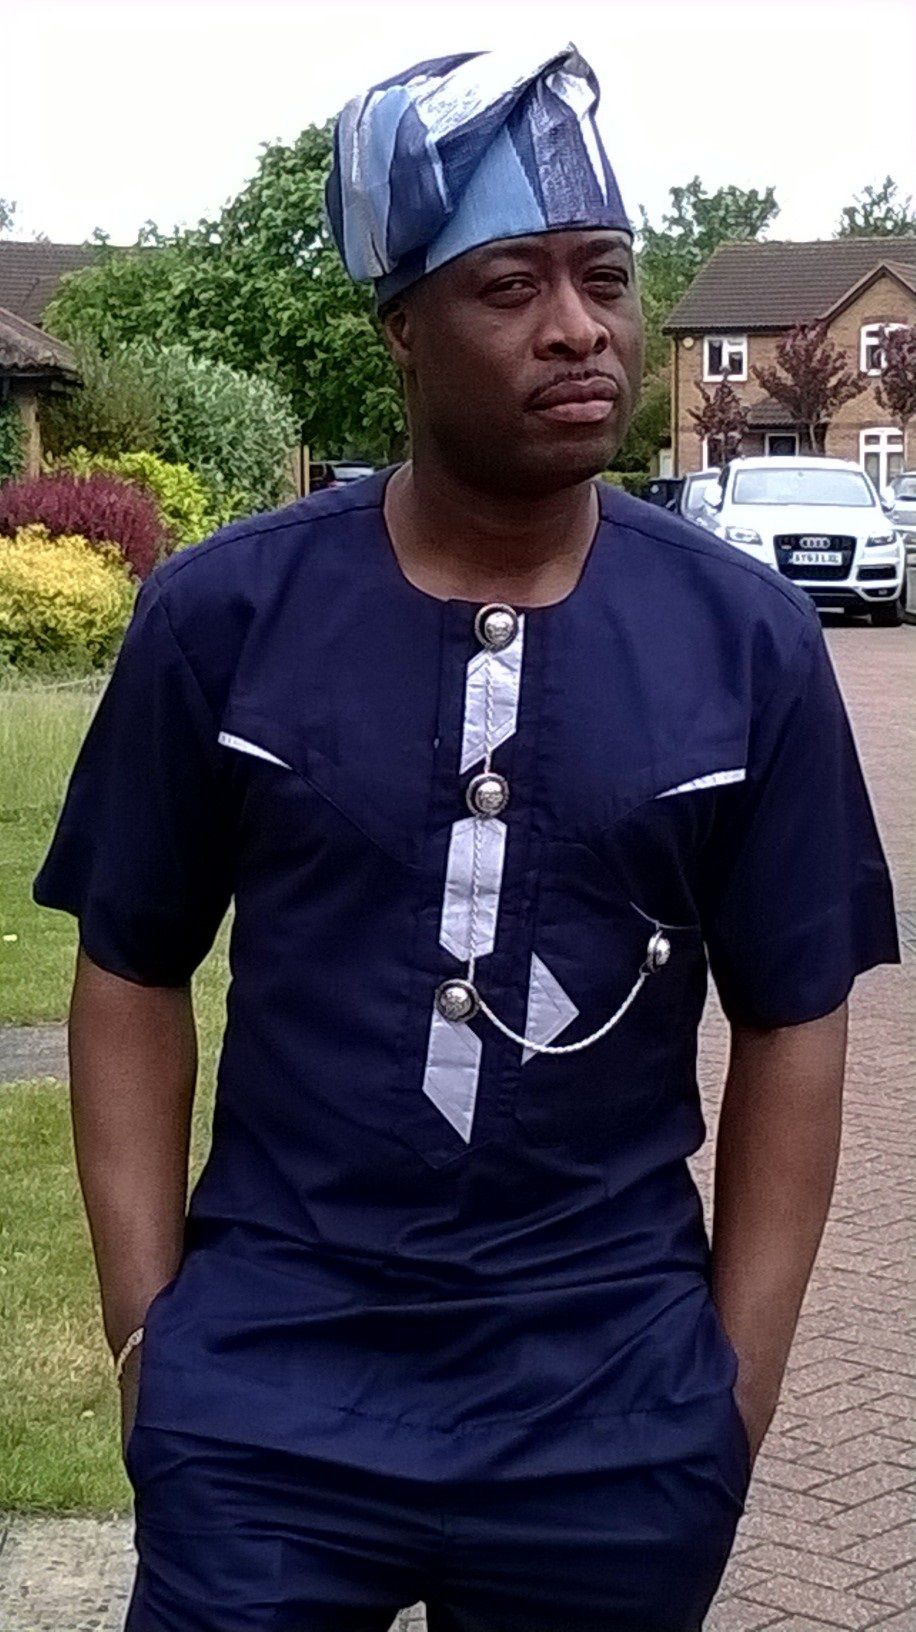 Shirt design in nigeria - Are You A Fashion Designer Looking For Professional Tailors To Work With Gazzy Consults Is